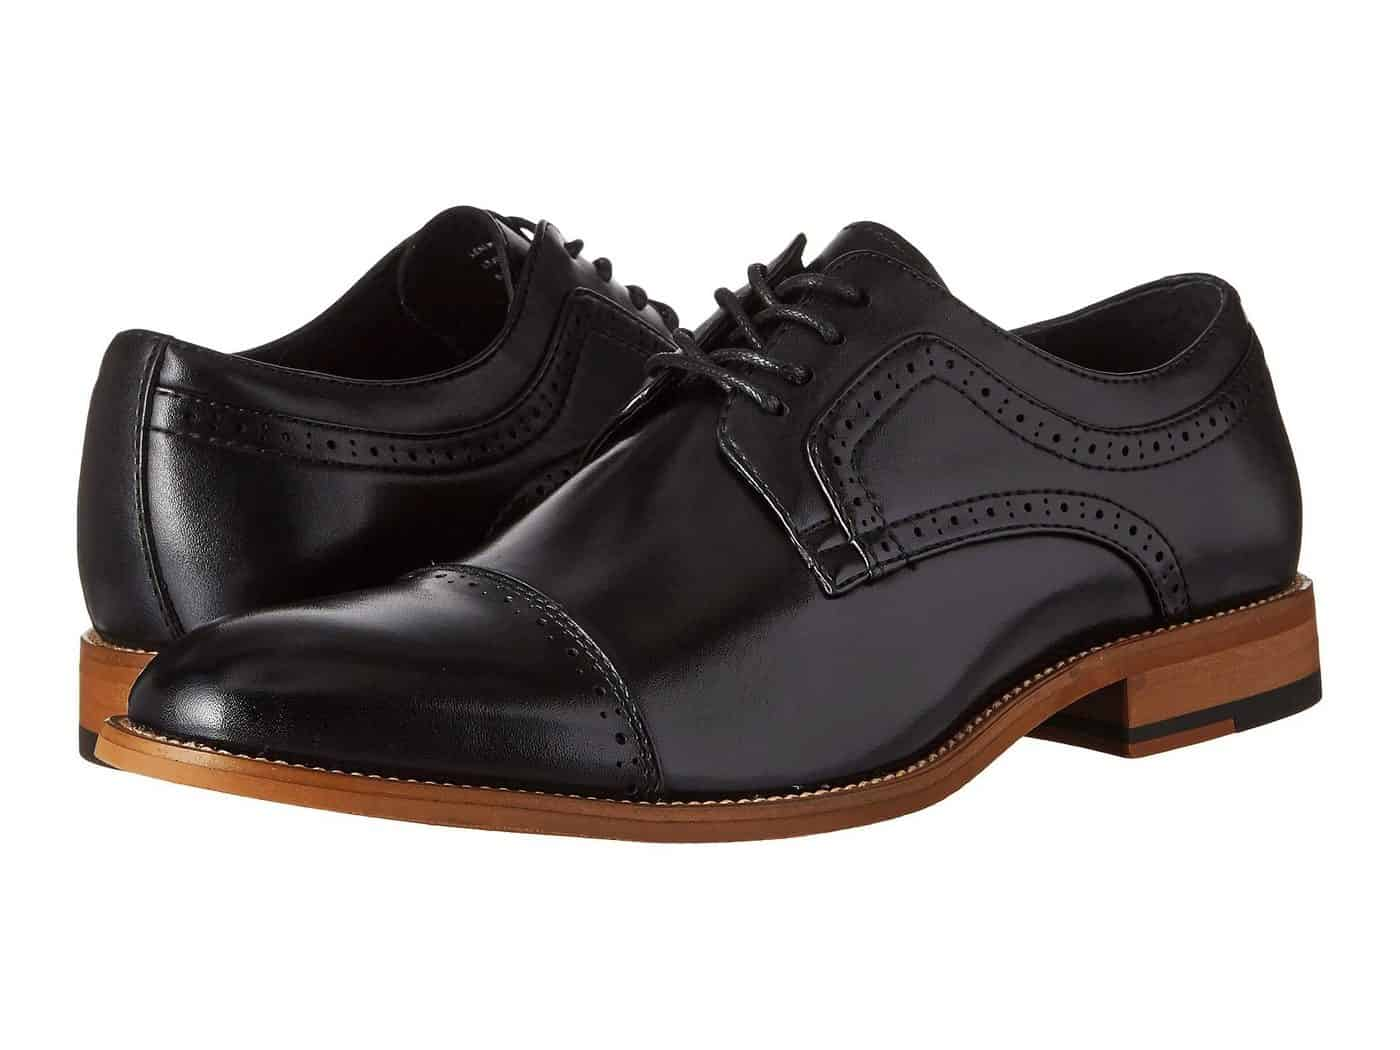 Stacy Adams oxford shoes